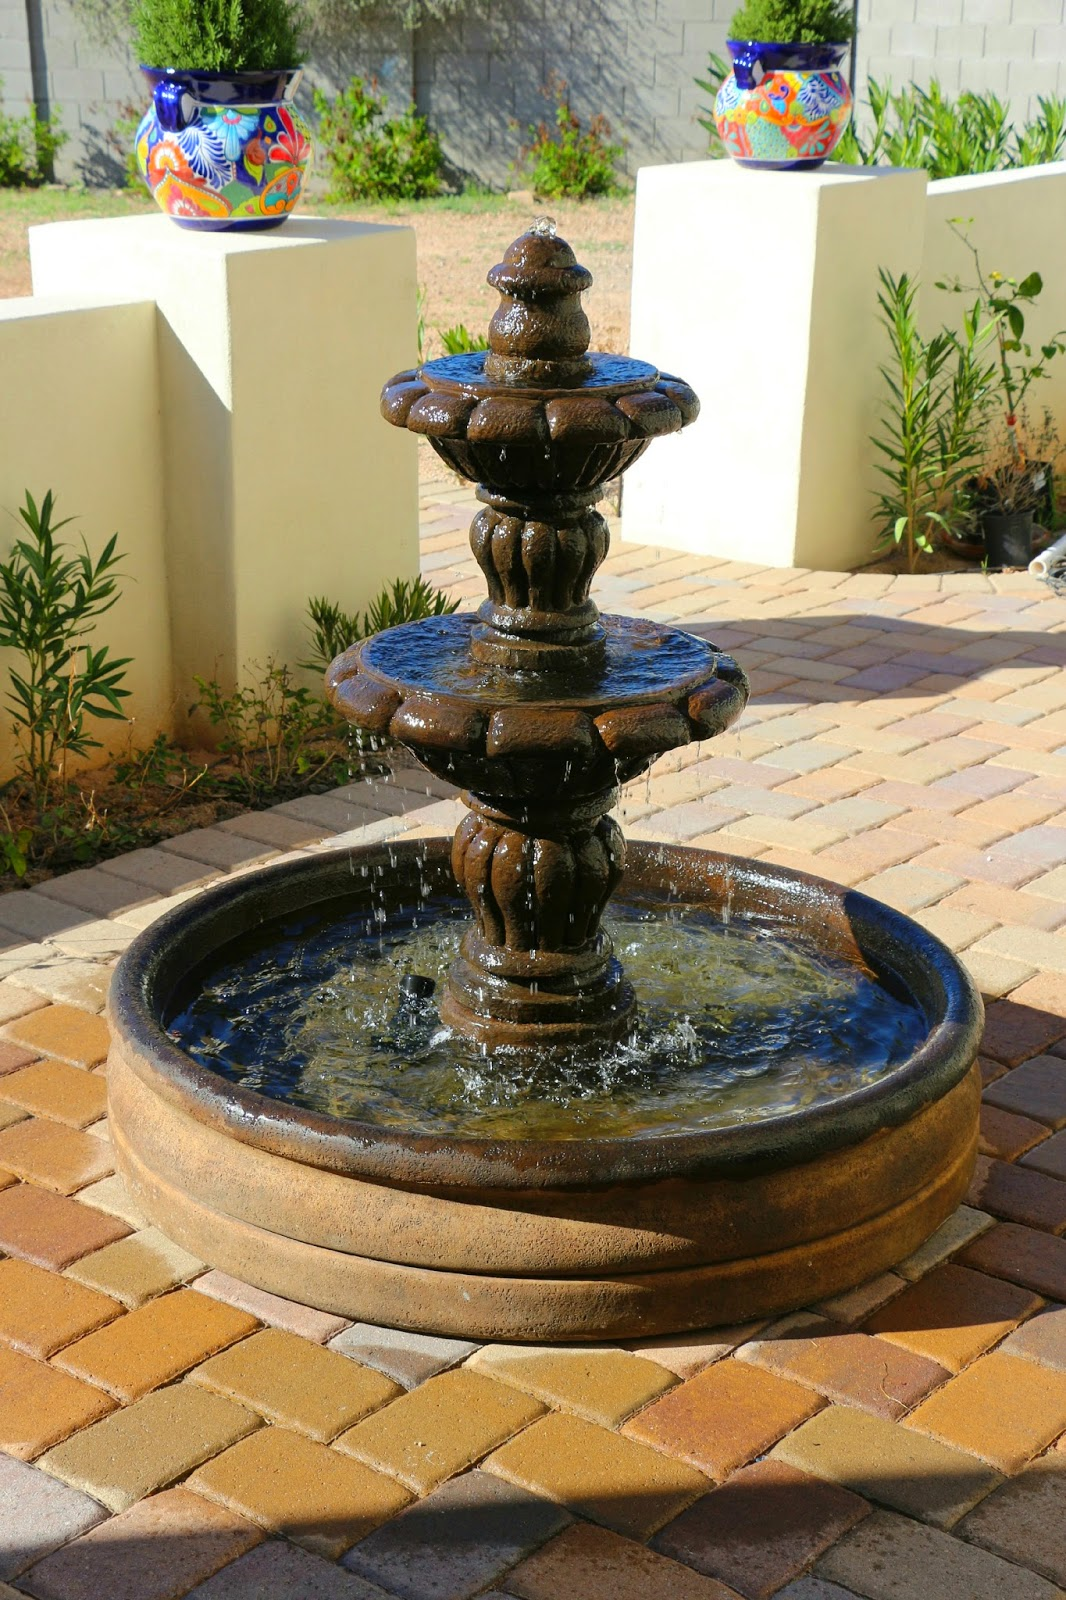 al's garden fountain, espana fountain, spanish fountain